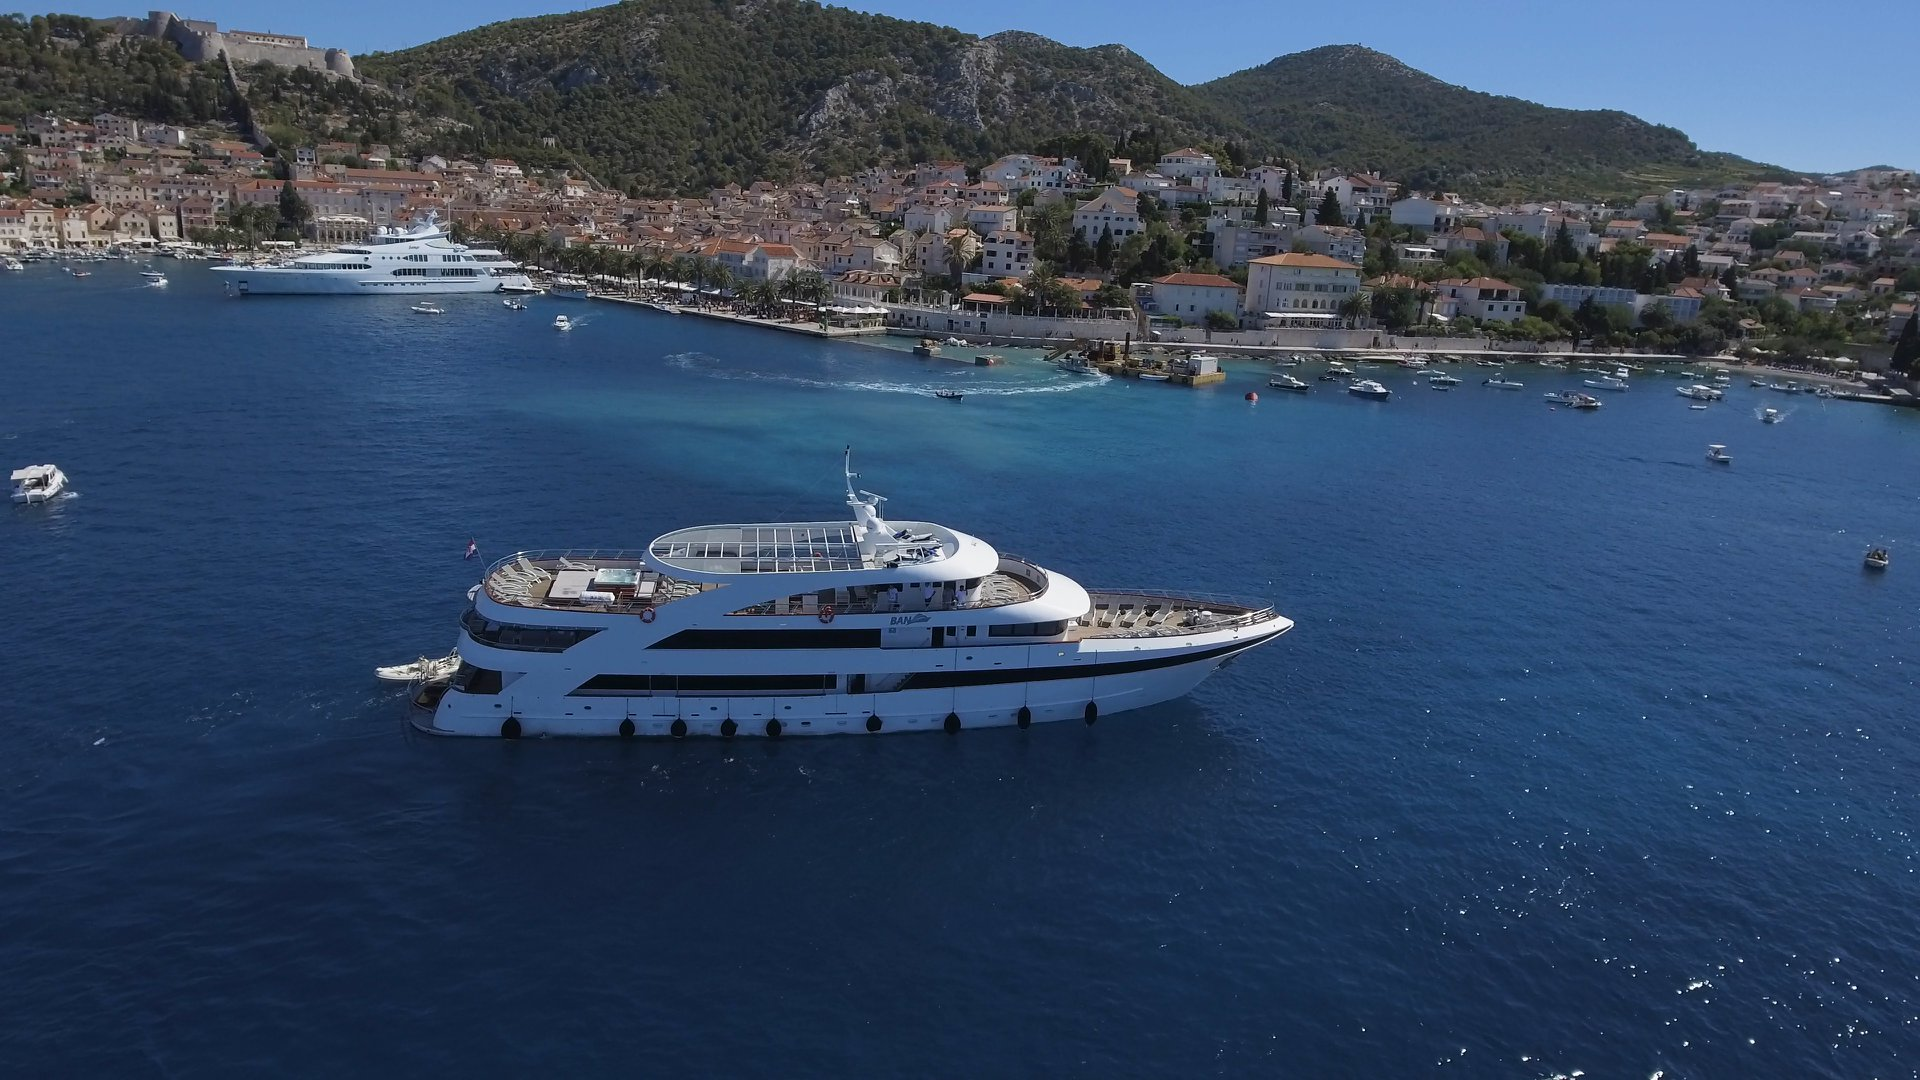 Adriatic Discovery Cruise from Dubrovnik to Split on Ban 6